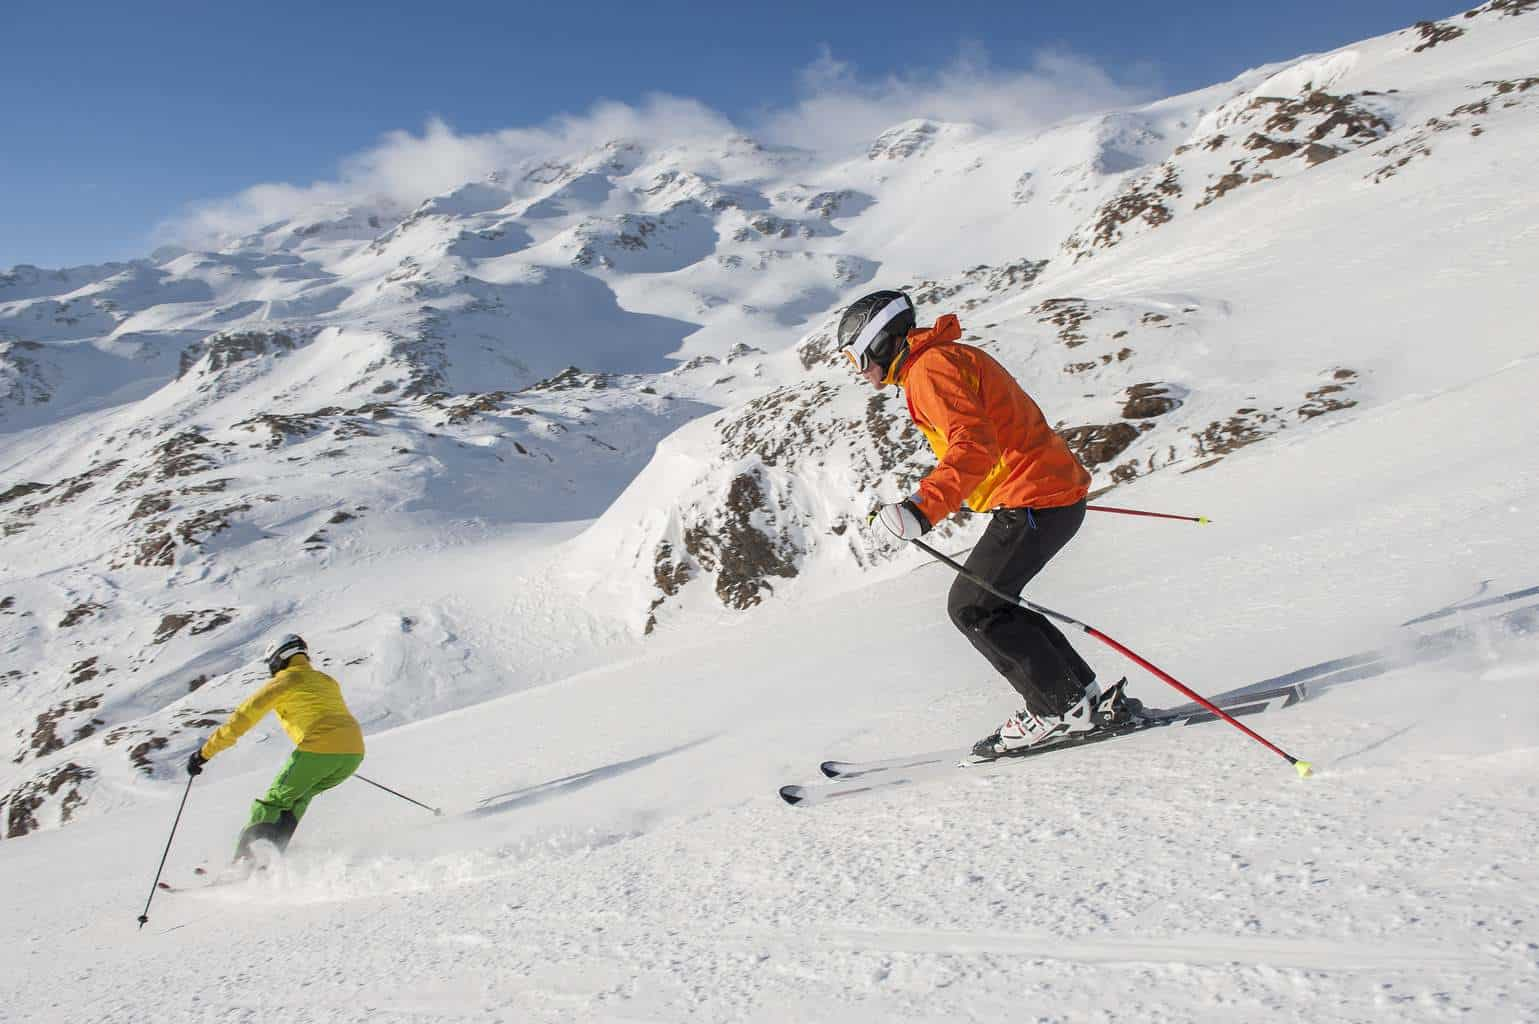 couples skiing down the mountains